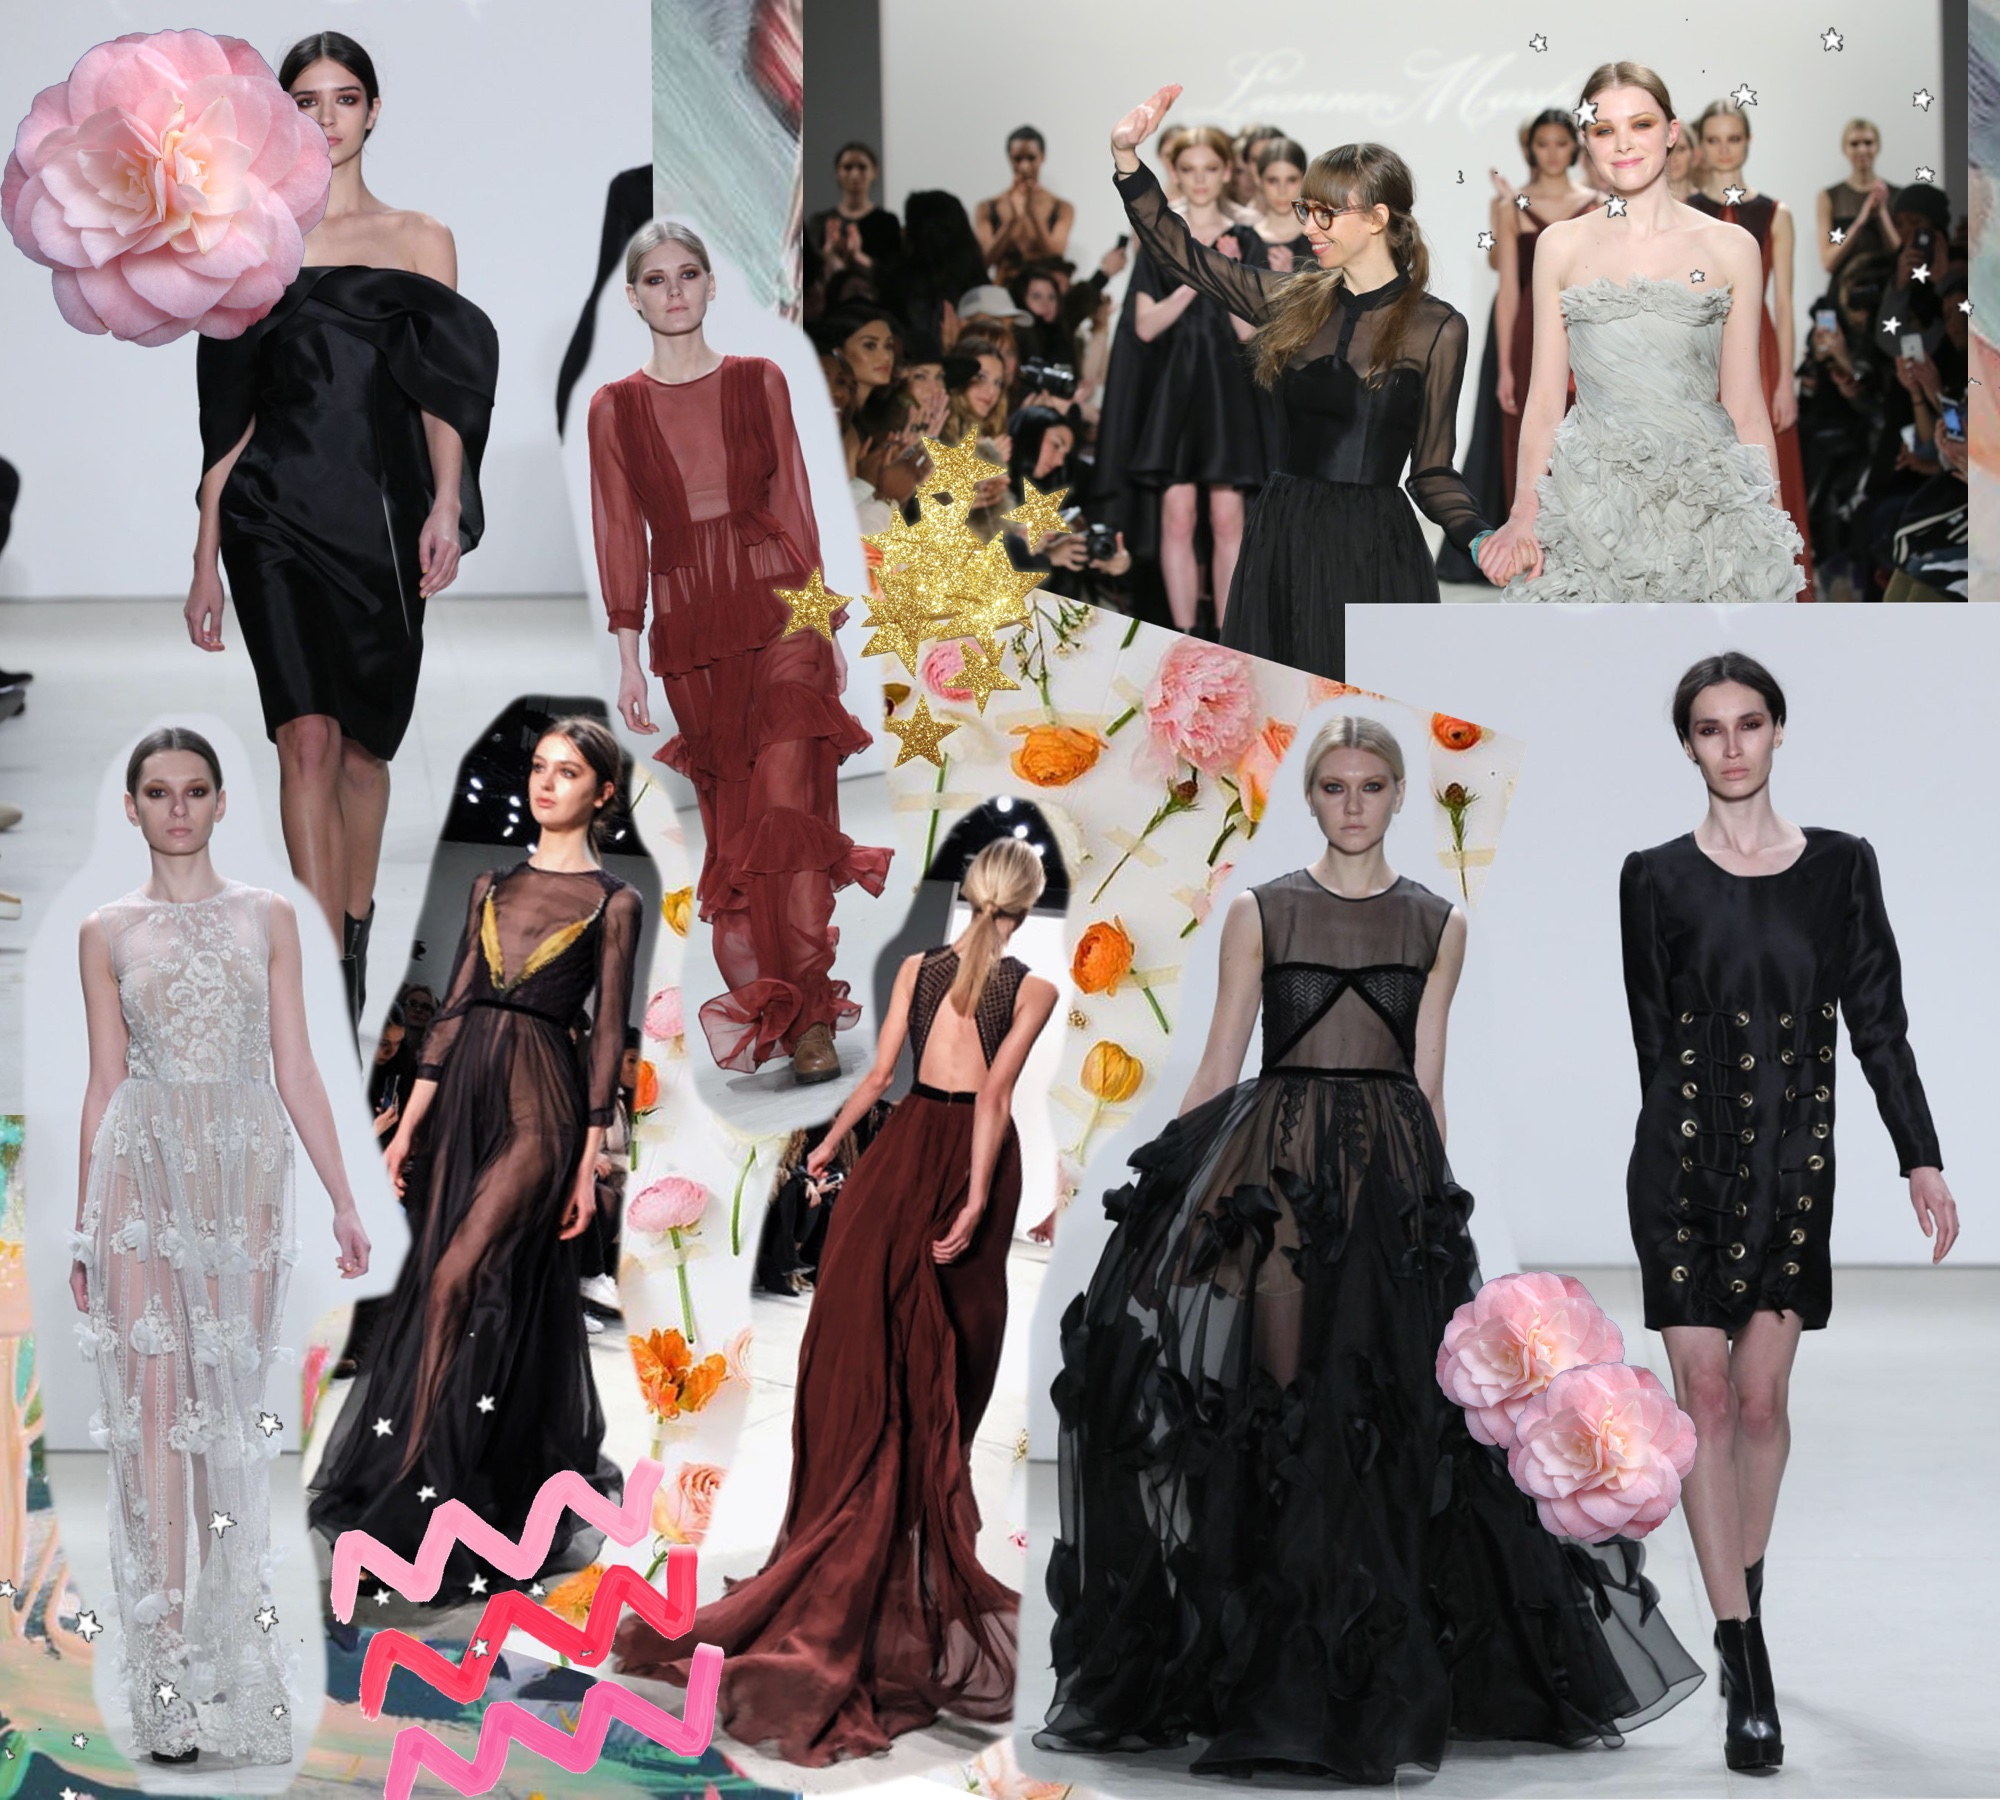 NYFW Diary, Backstage at Leanne Marshall FW16: To Style, With Love